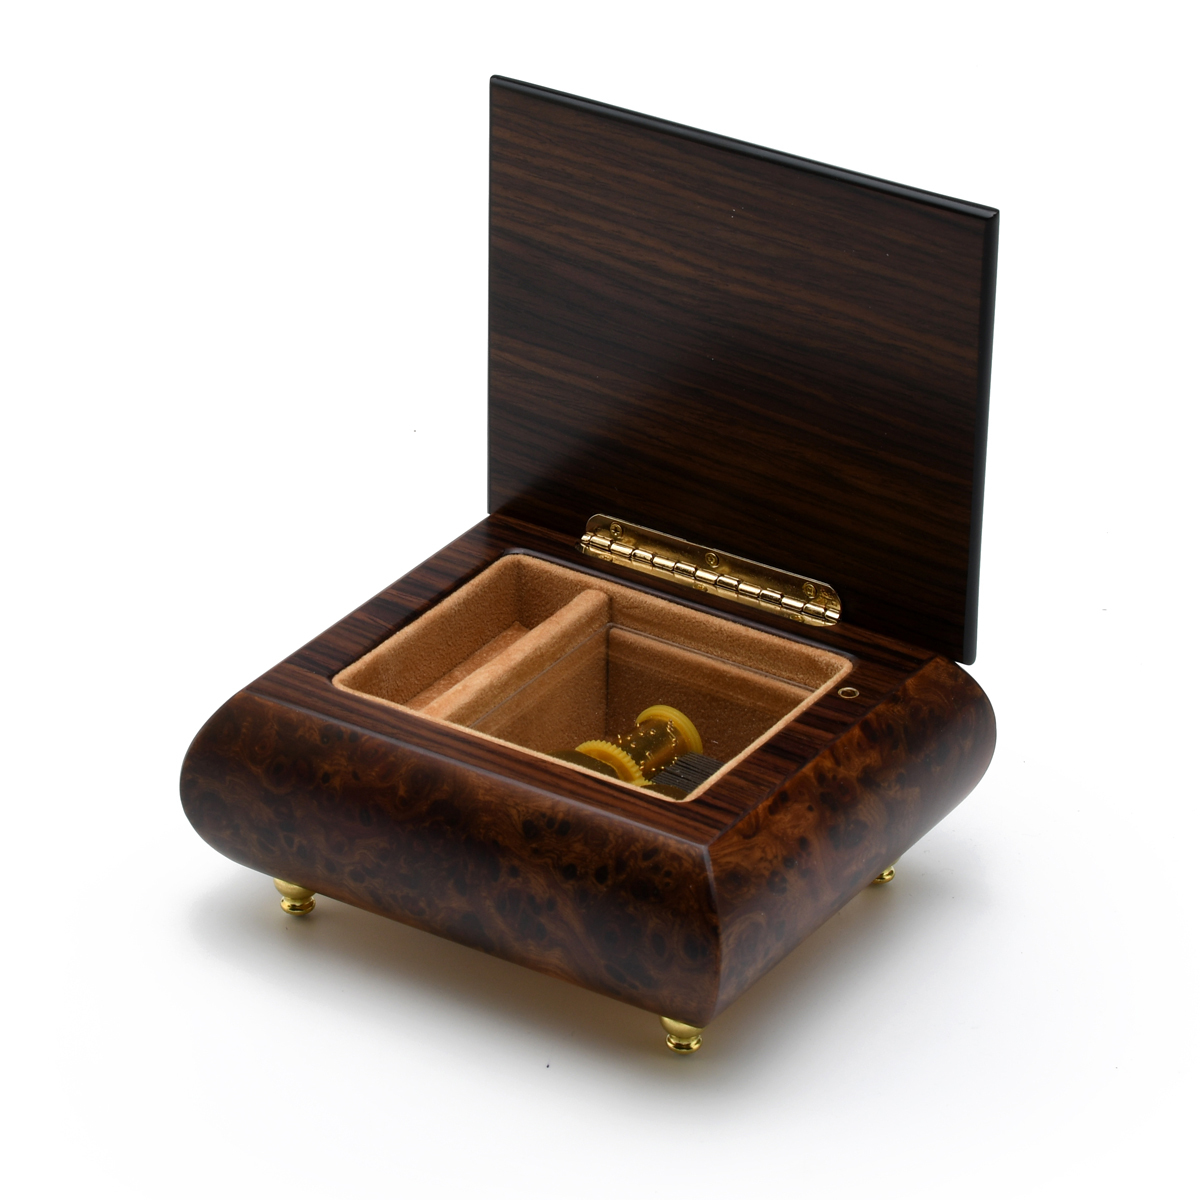 Delightful Natural Tone Music Box with 3 Graceful Ballerinas Wood Inlay